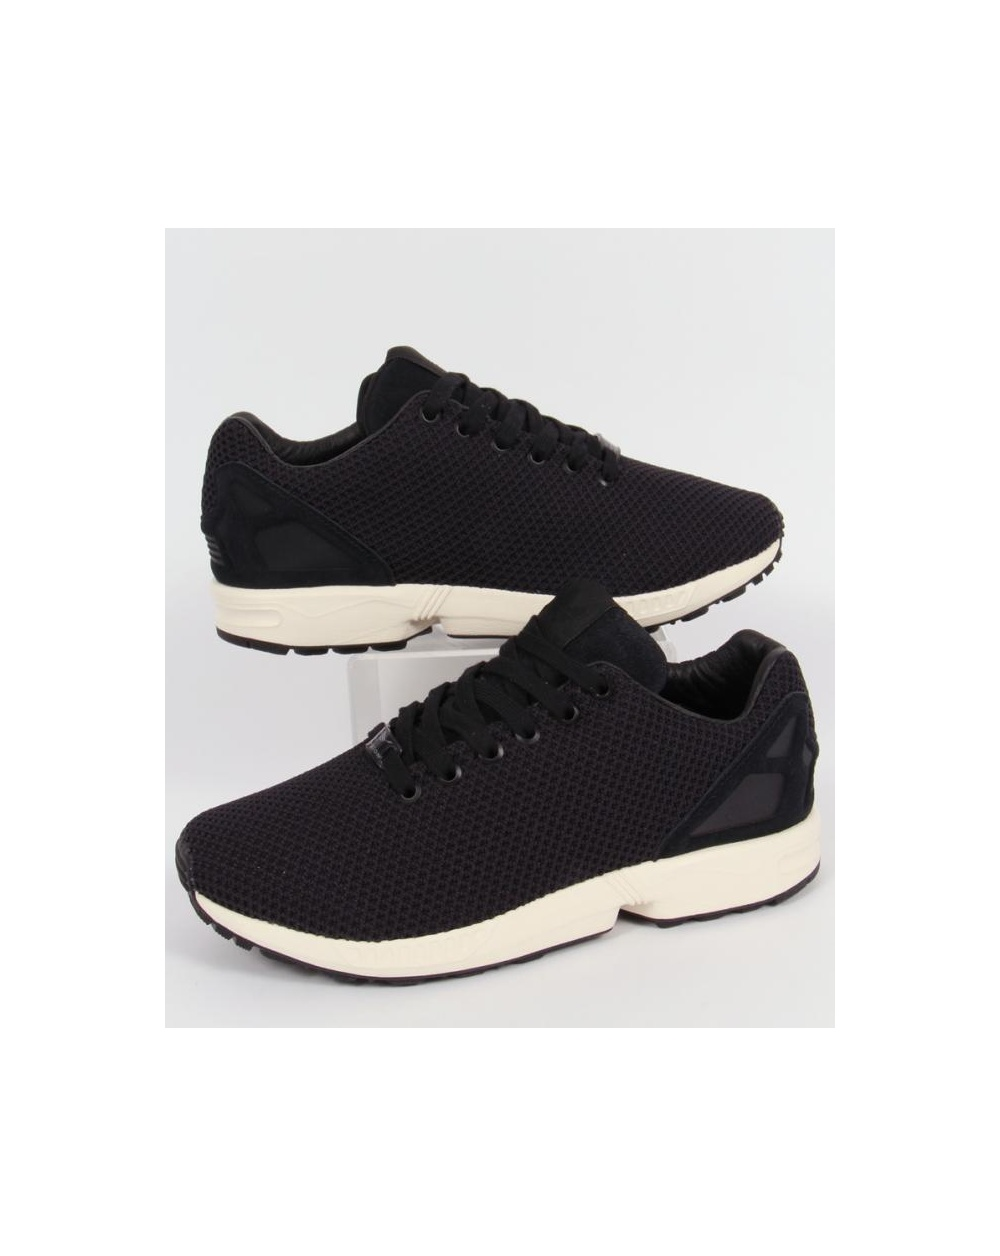 size 40 e5562 289bf Adidas ZX Flux Trainers Black